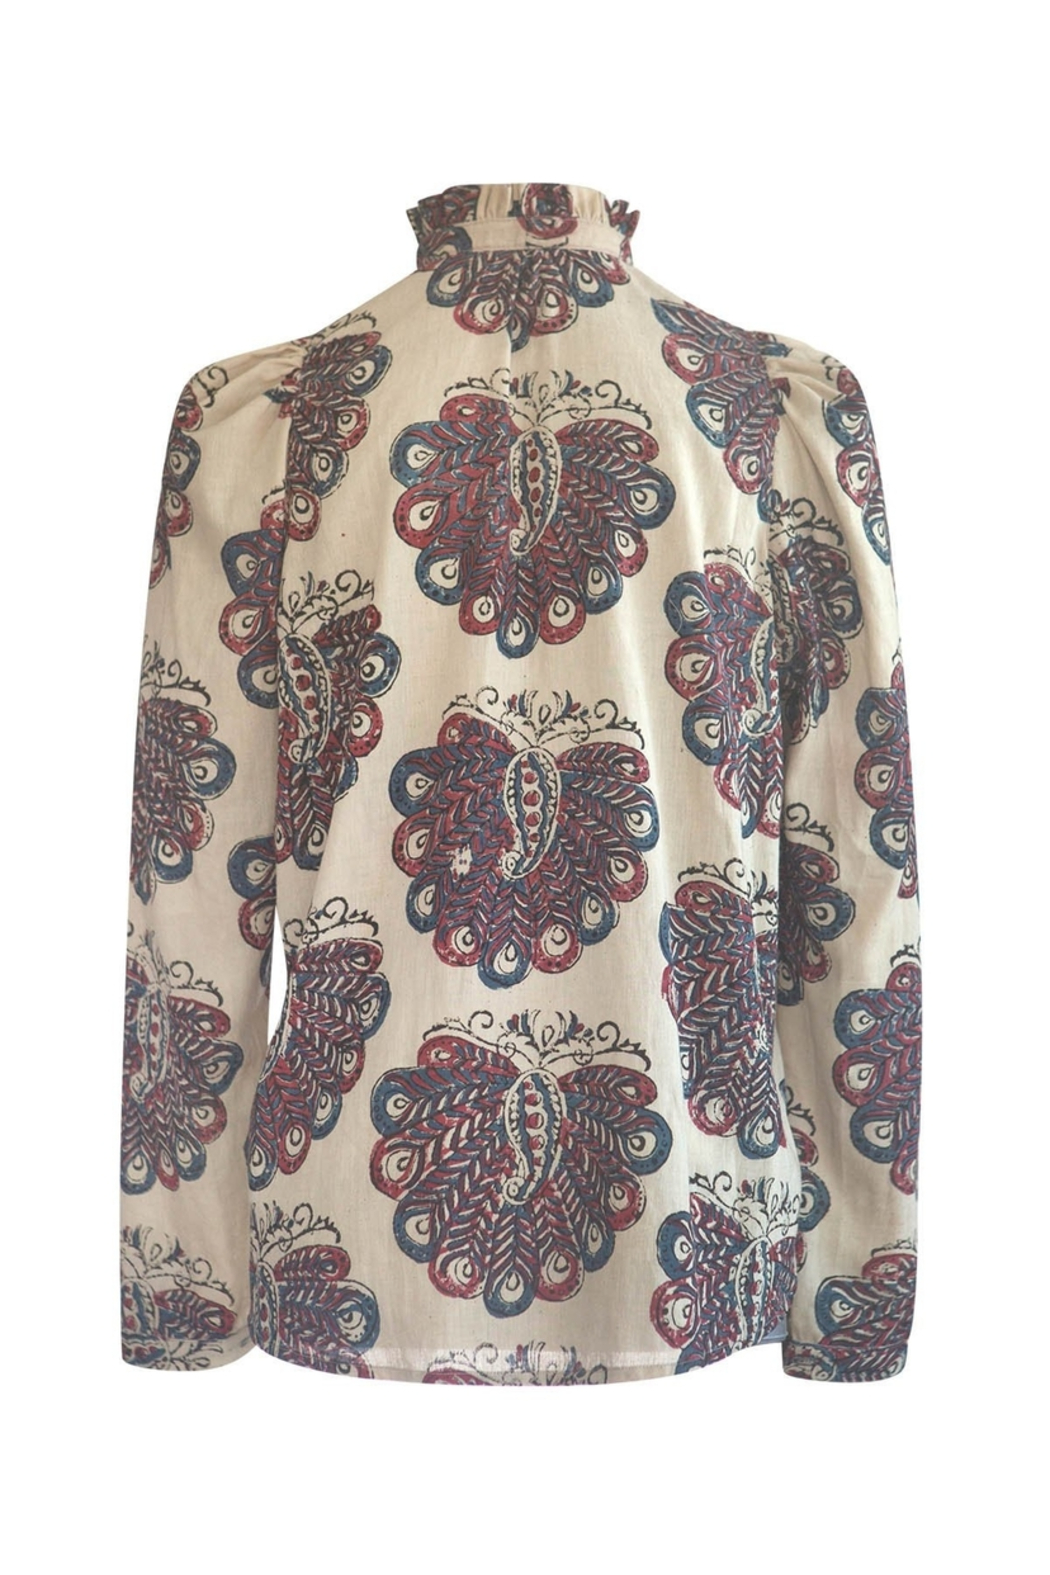 Alix of Bohemia Annabel Block Print Peacock Blouse (More Colors) - Side Cropped Image